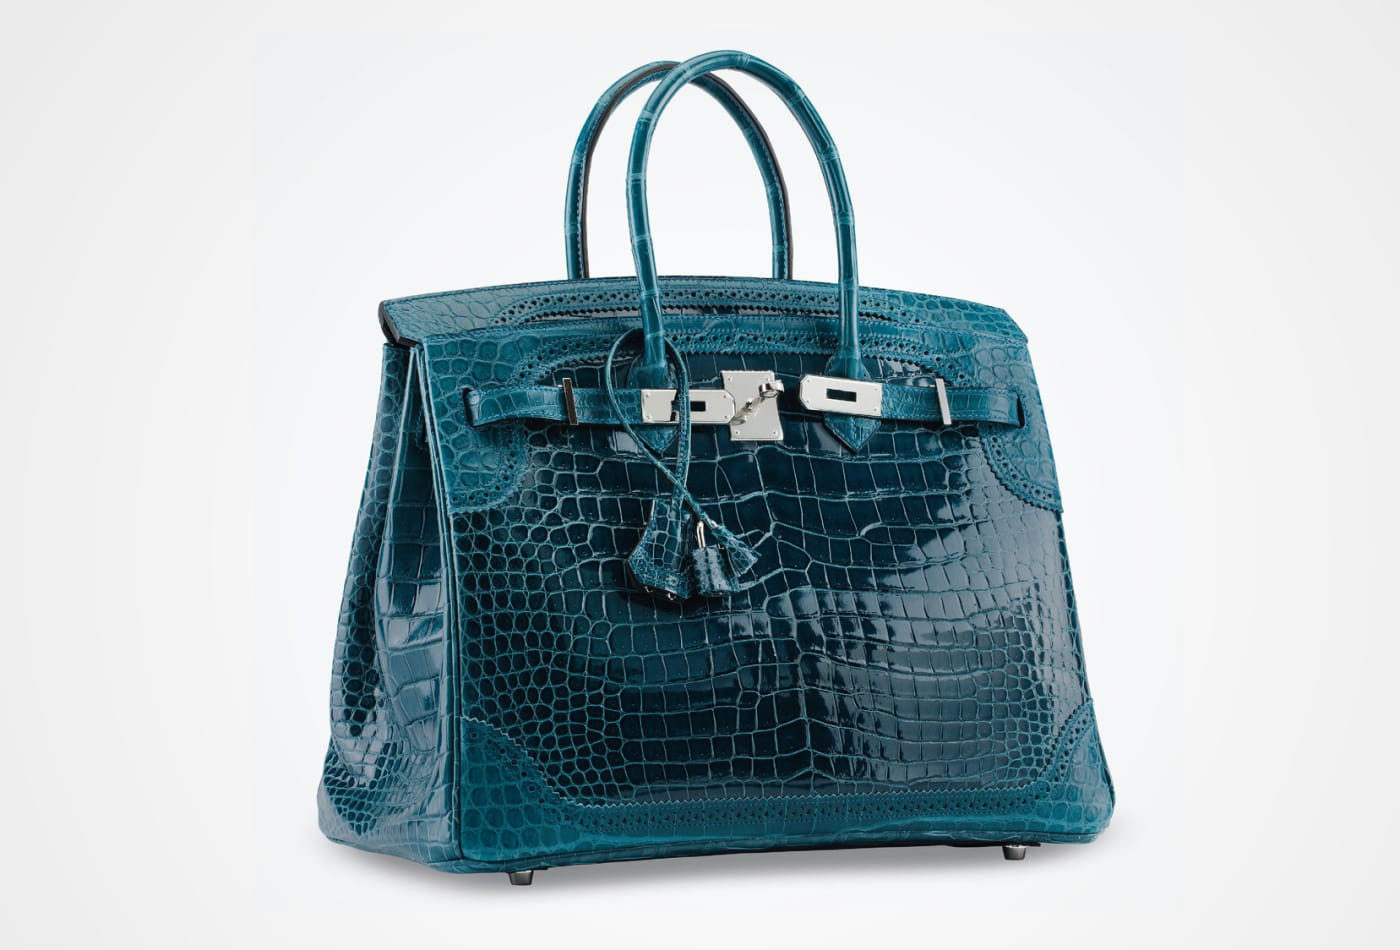 8a469542fdb0 This Hermès Birkin handbag is expected to sell for over  50